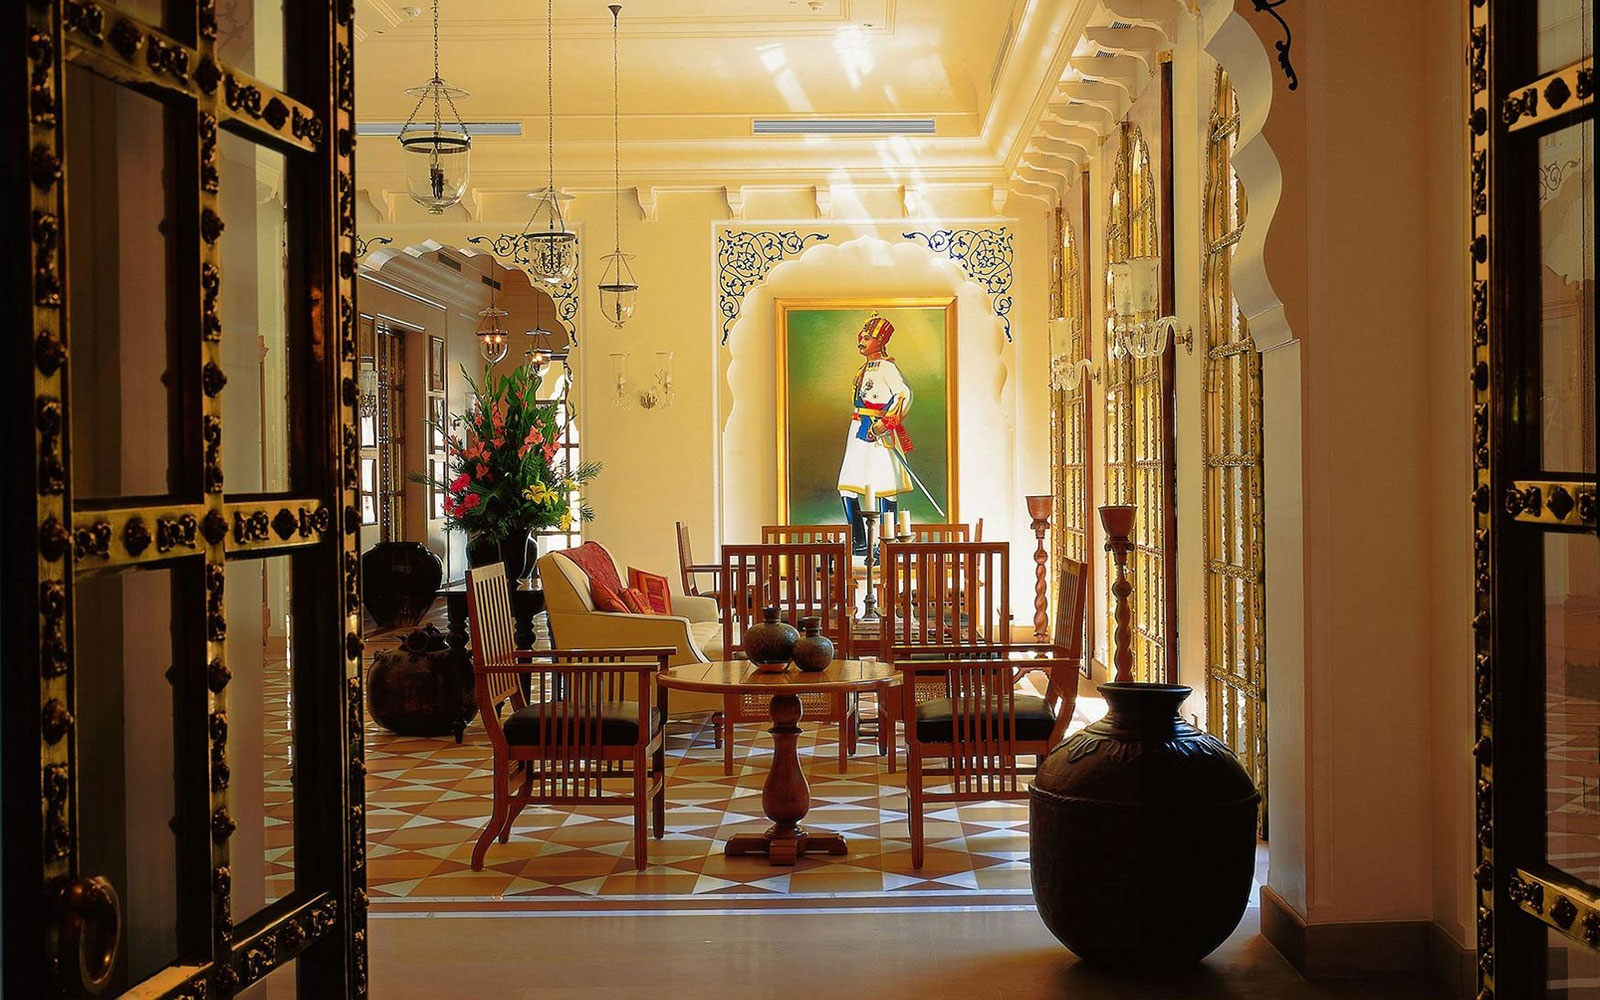 guest room at The Oberoi Rajvilas, Jaipur, Rajasthan, India